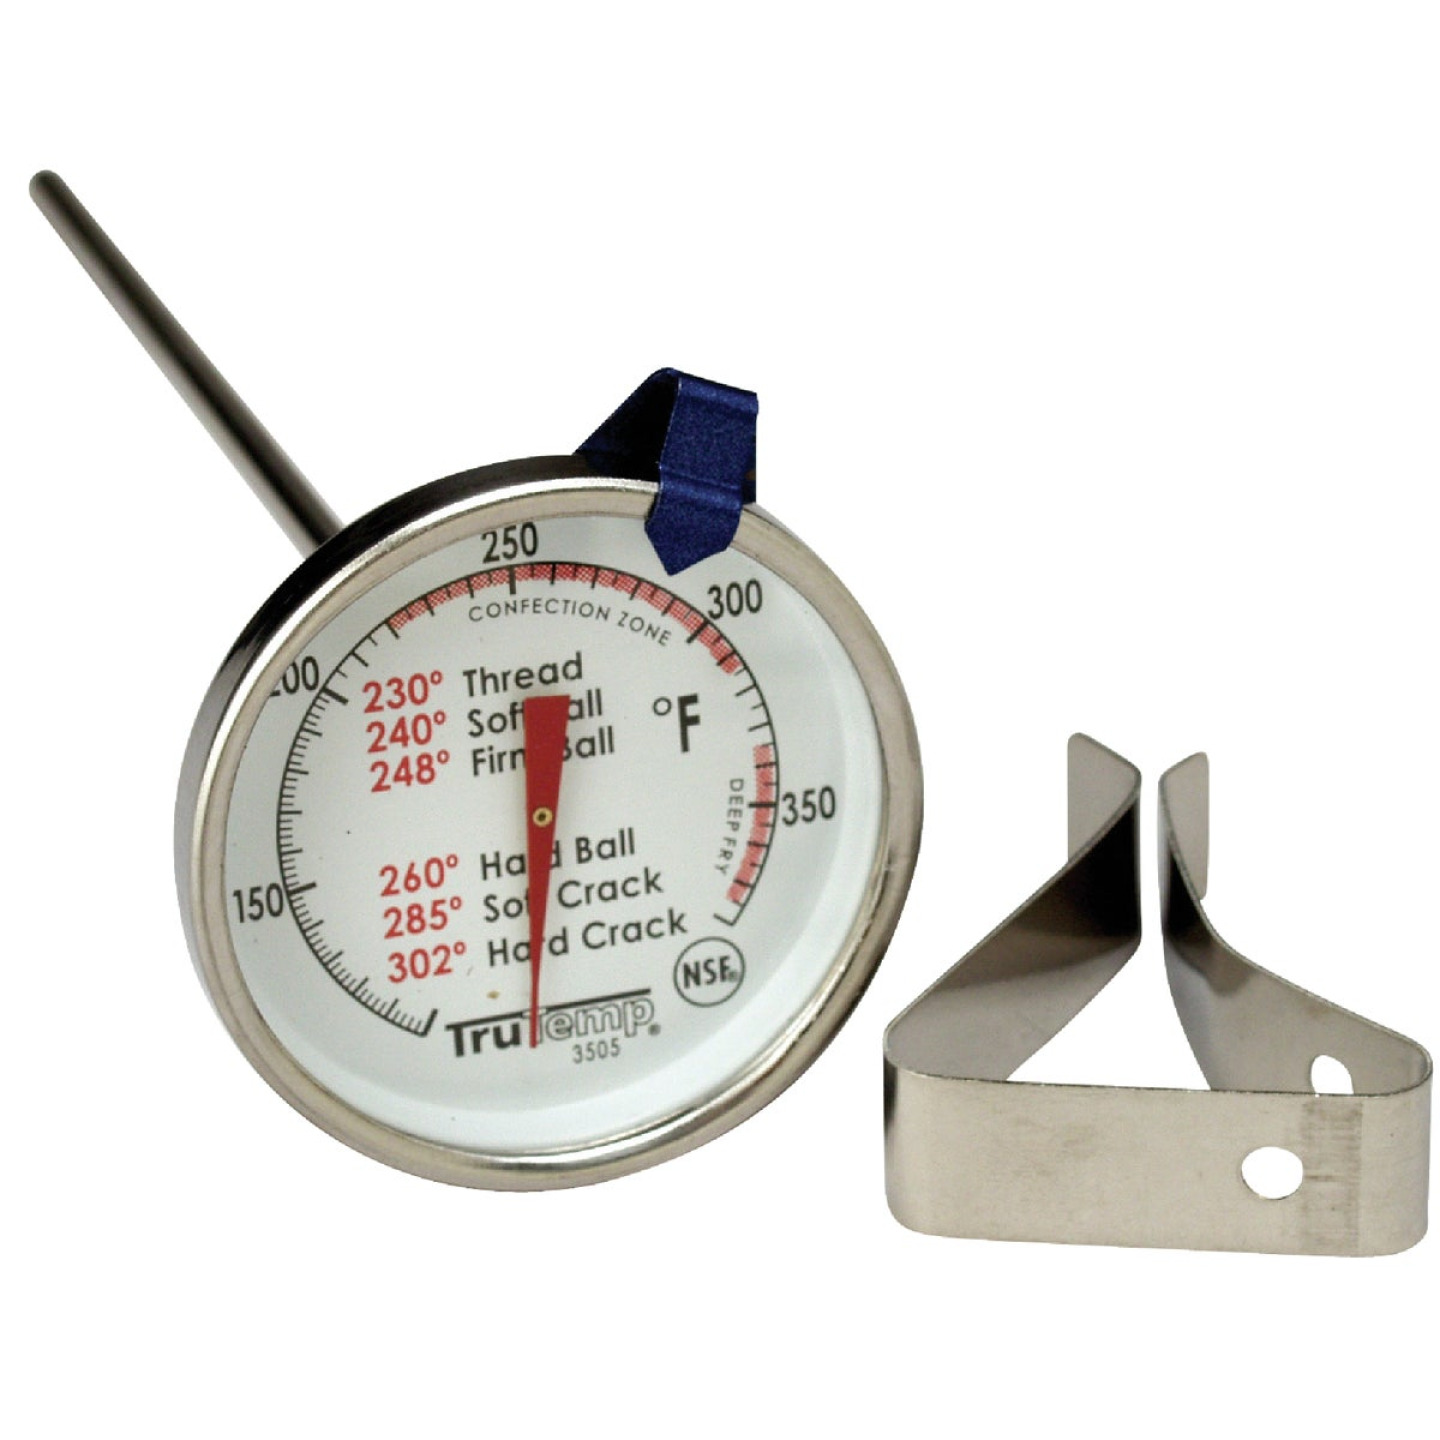 Taylor TruTemp Candy/Deep Fryer Kitchen Thermometer Image 1